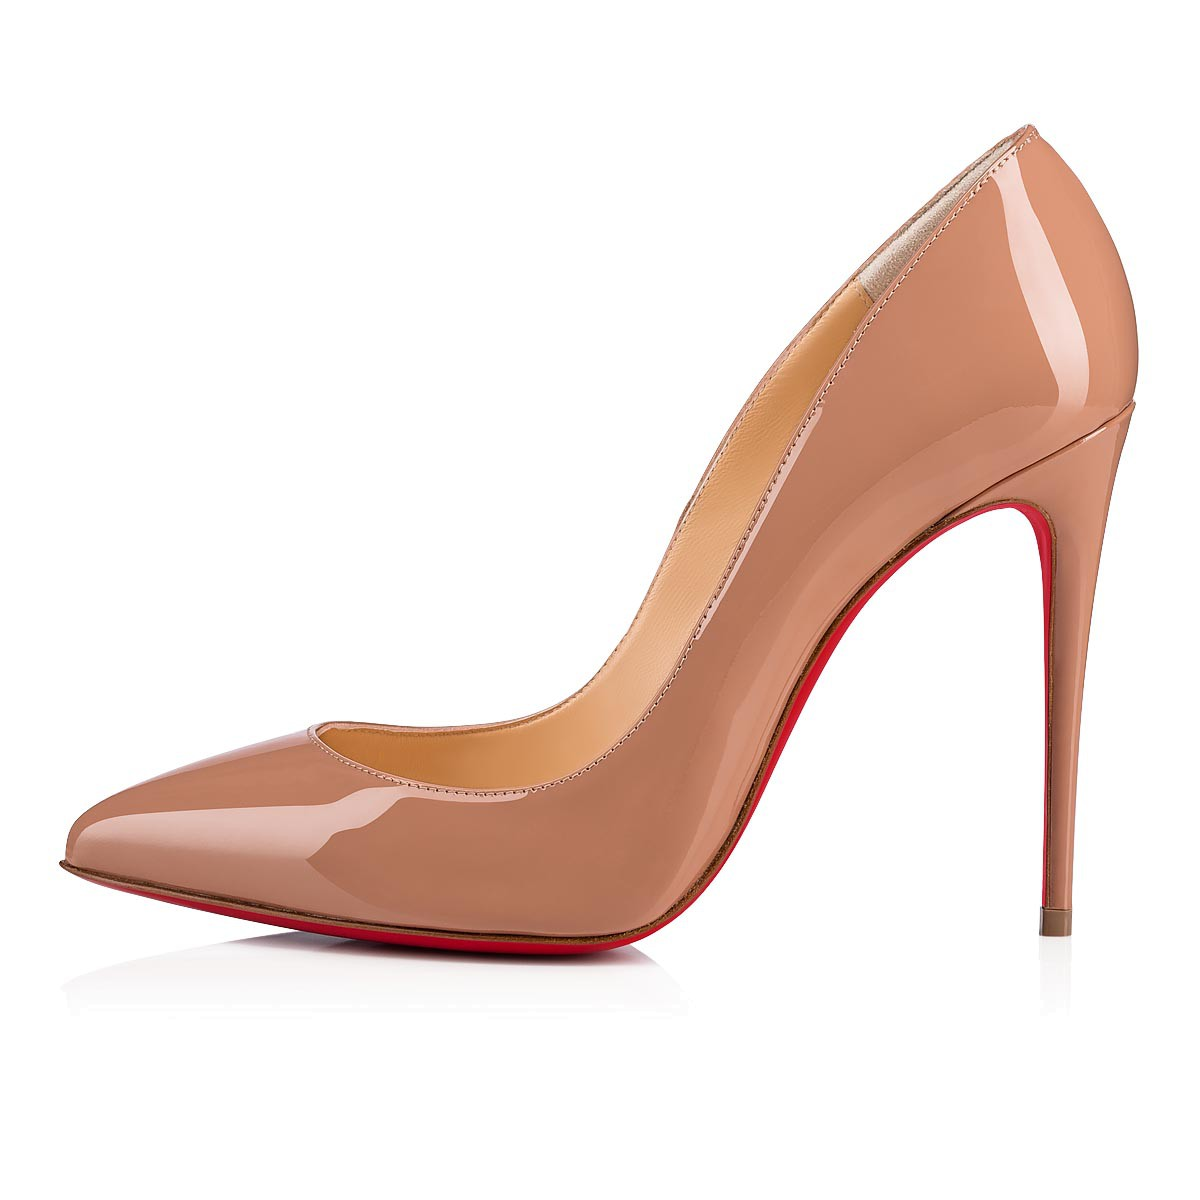 newest collection 565da 709bc Pigalle Follies 100 Nude Patent Leather - Women Shoes - Christian Louboutin